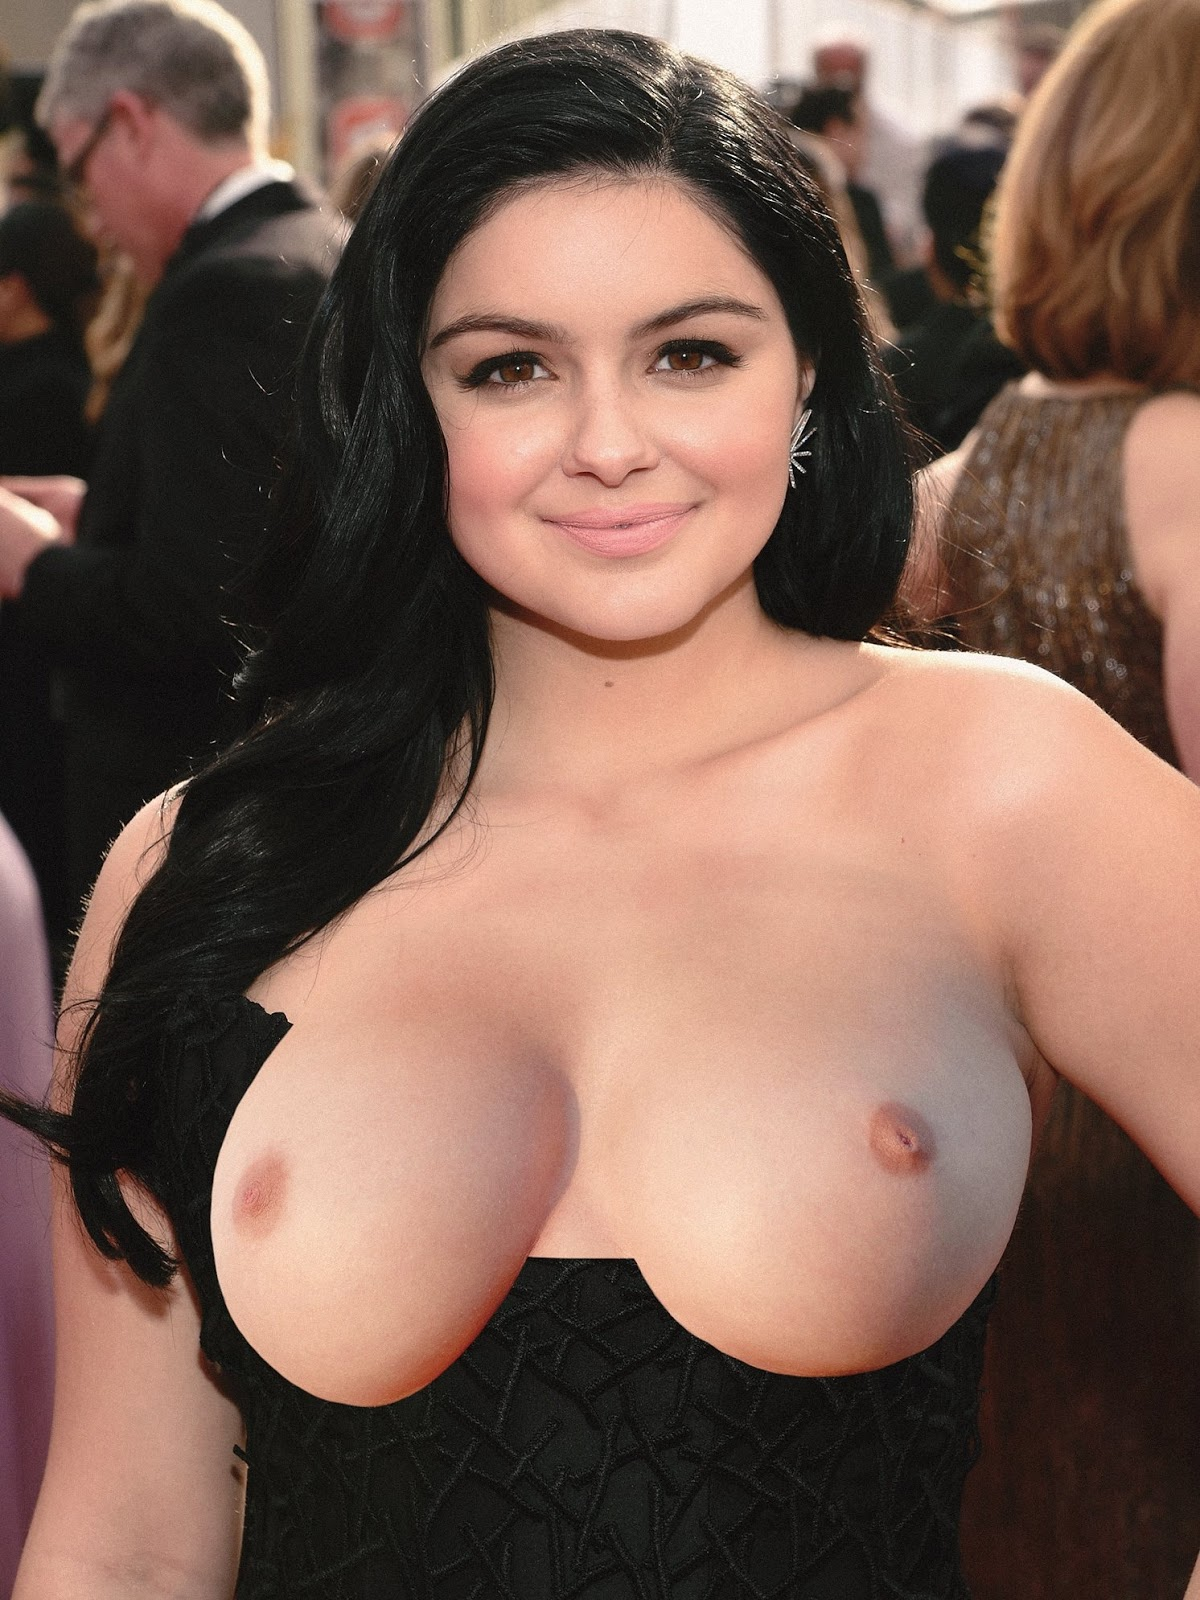 Alleged ariel winter topless limbo vid 8